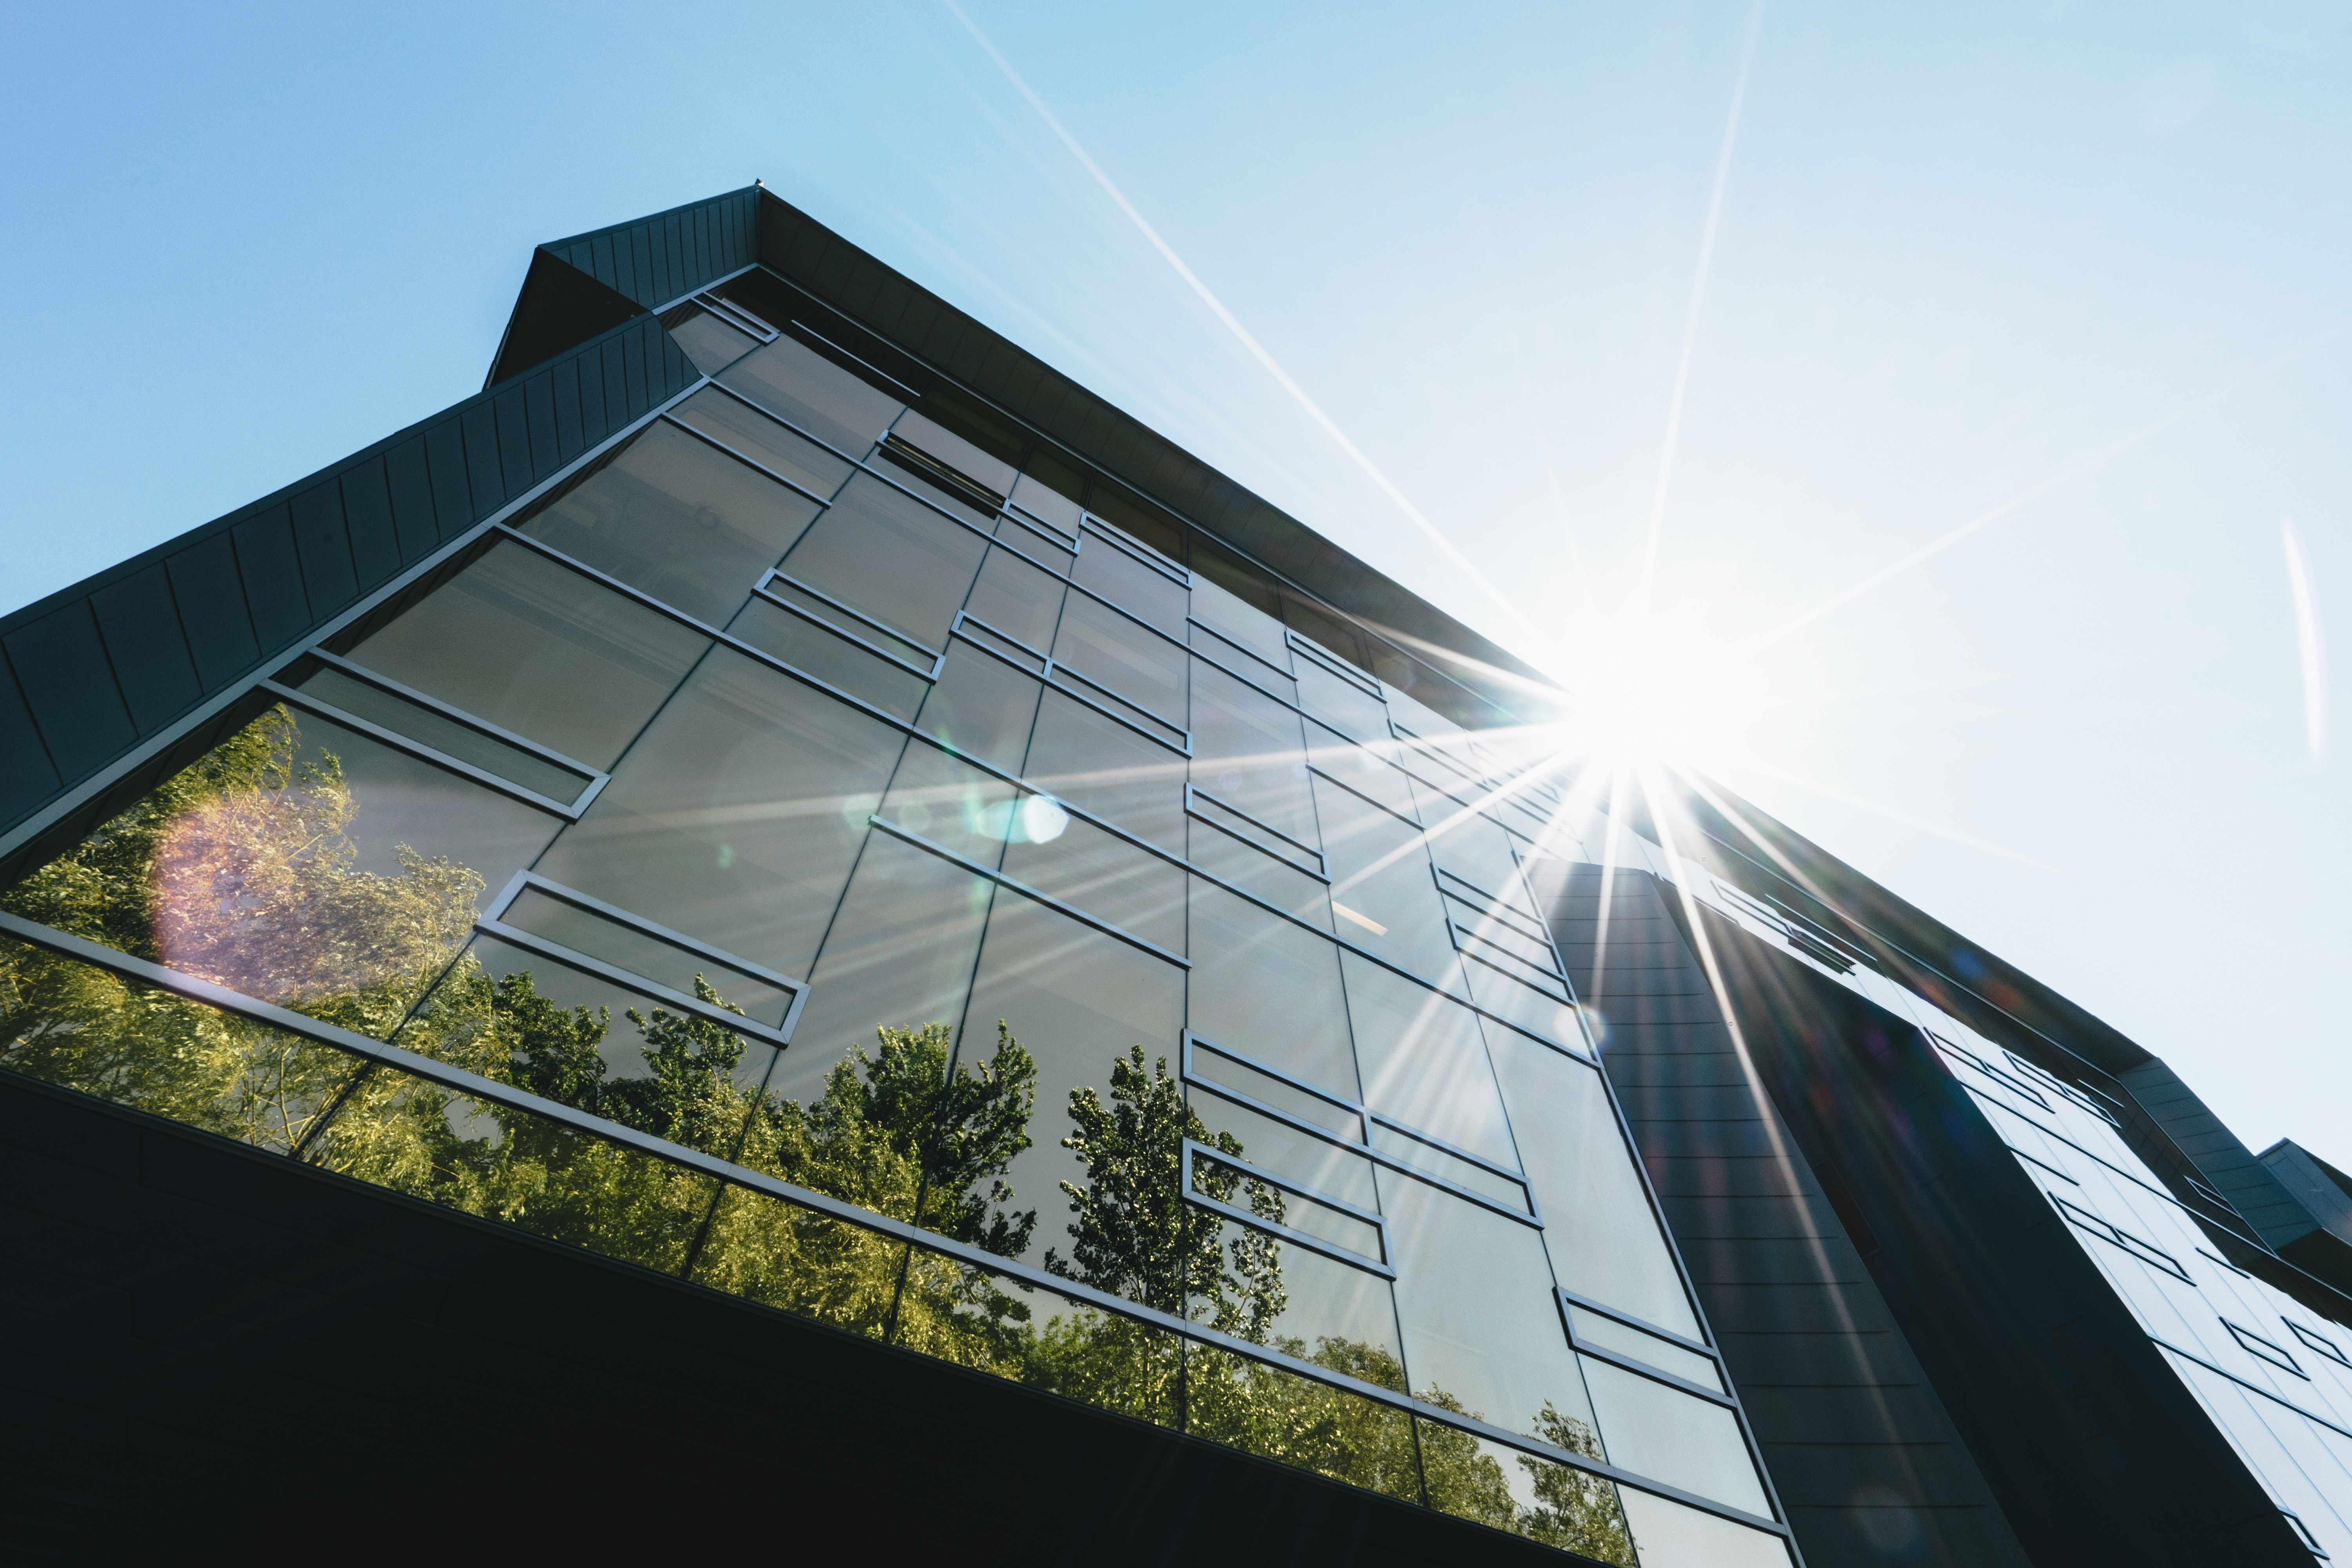 Going green: 10 easy steps to make your workspace more environmentally friendly